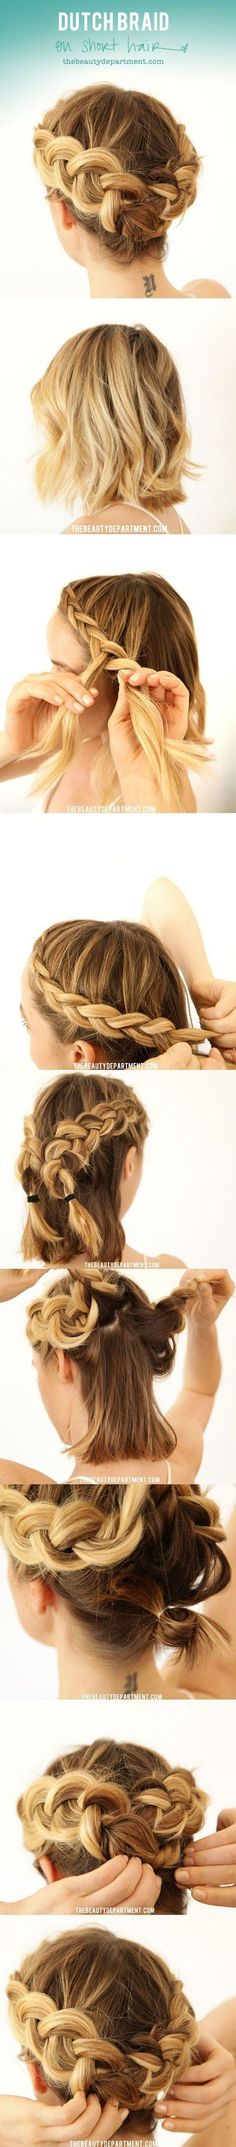 cool 20 Hair Tutorials You Can Totally DIY - The Right Hairstyles for You by http://www.dana-hairstyles.xyz/hair-tutorials/20-hair-tutorials-you-can-totally-diy-the-right-hairstyles-for-you-5/